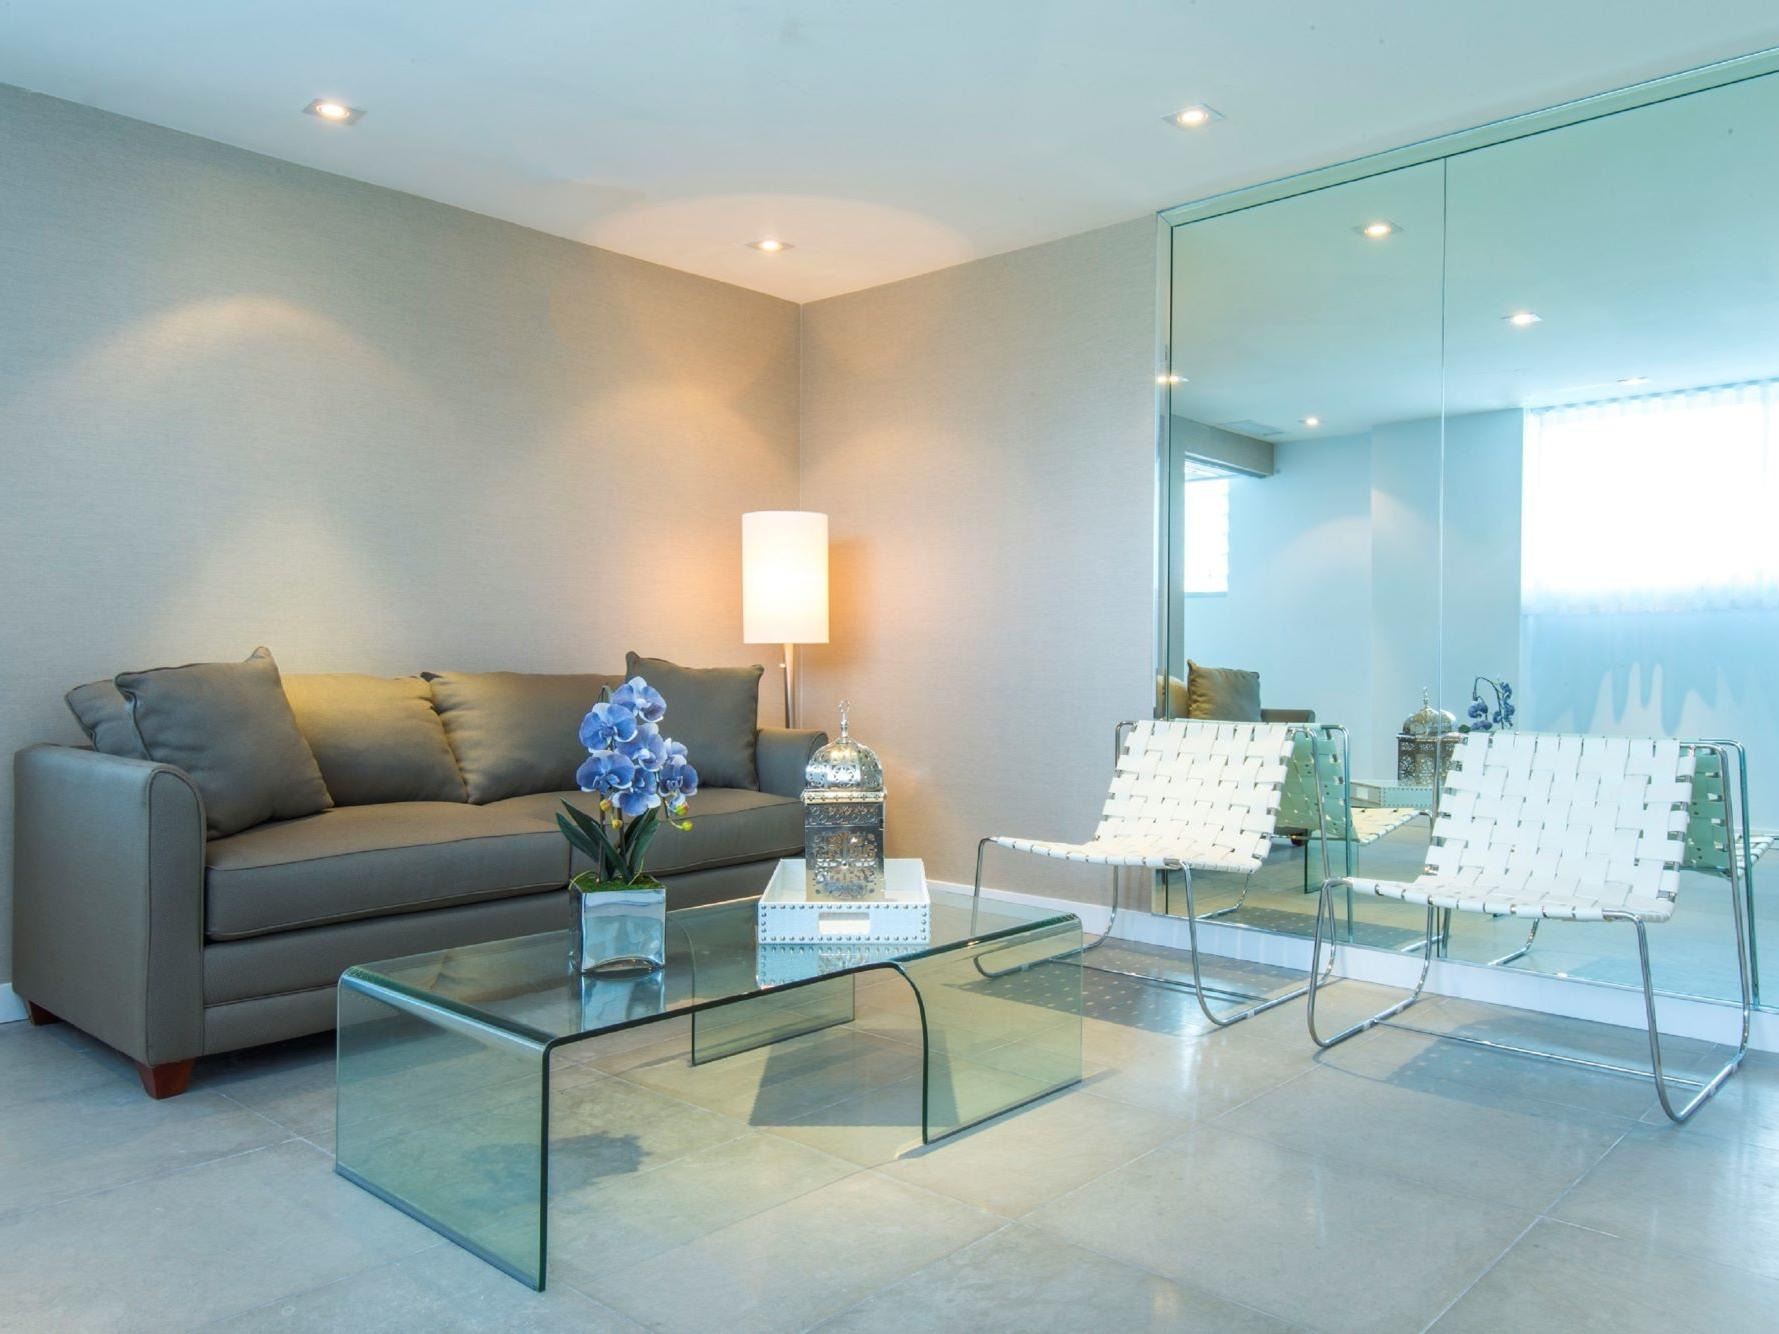 living room with grey sofa bed, glass coffee table and white side chairs